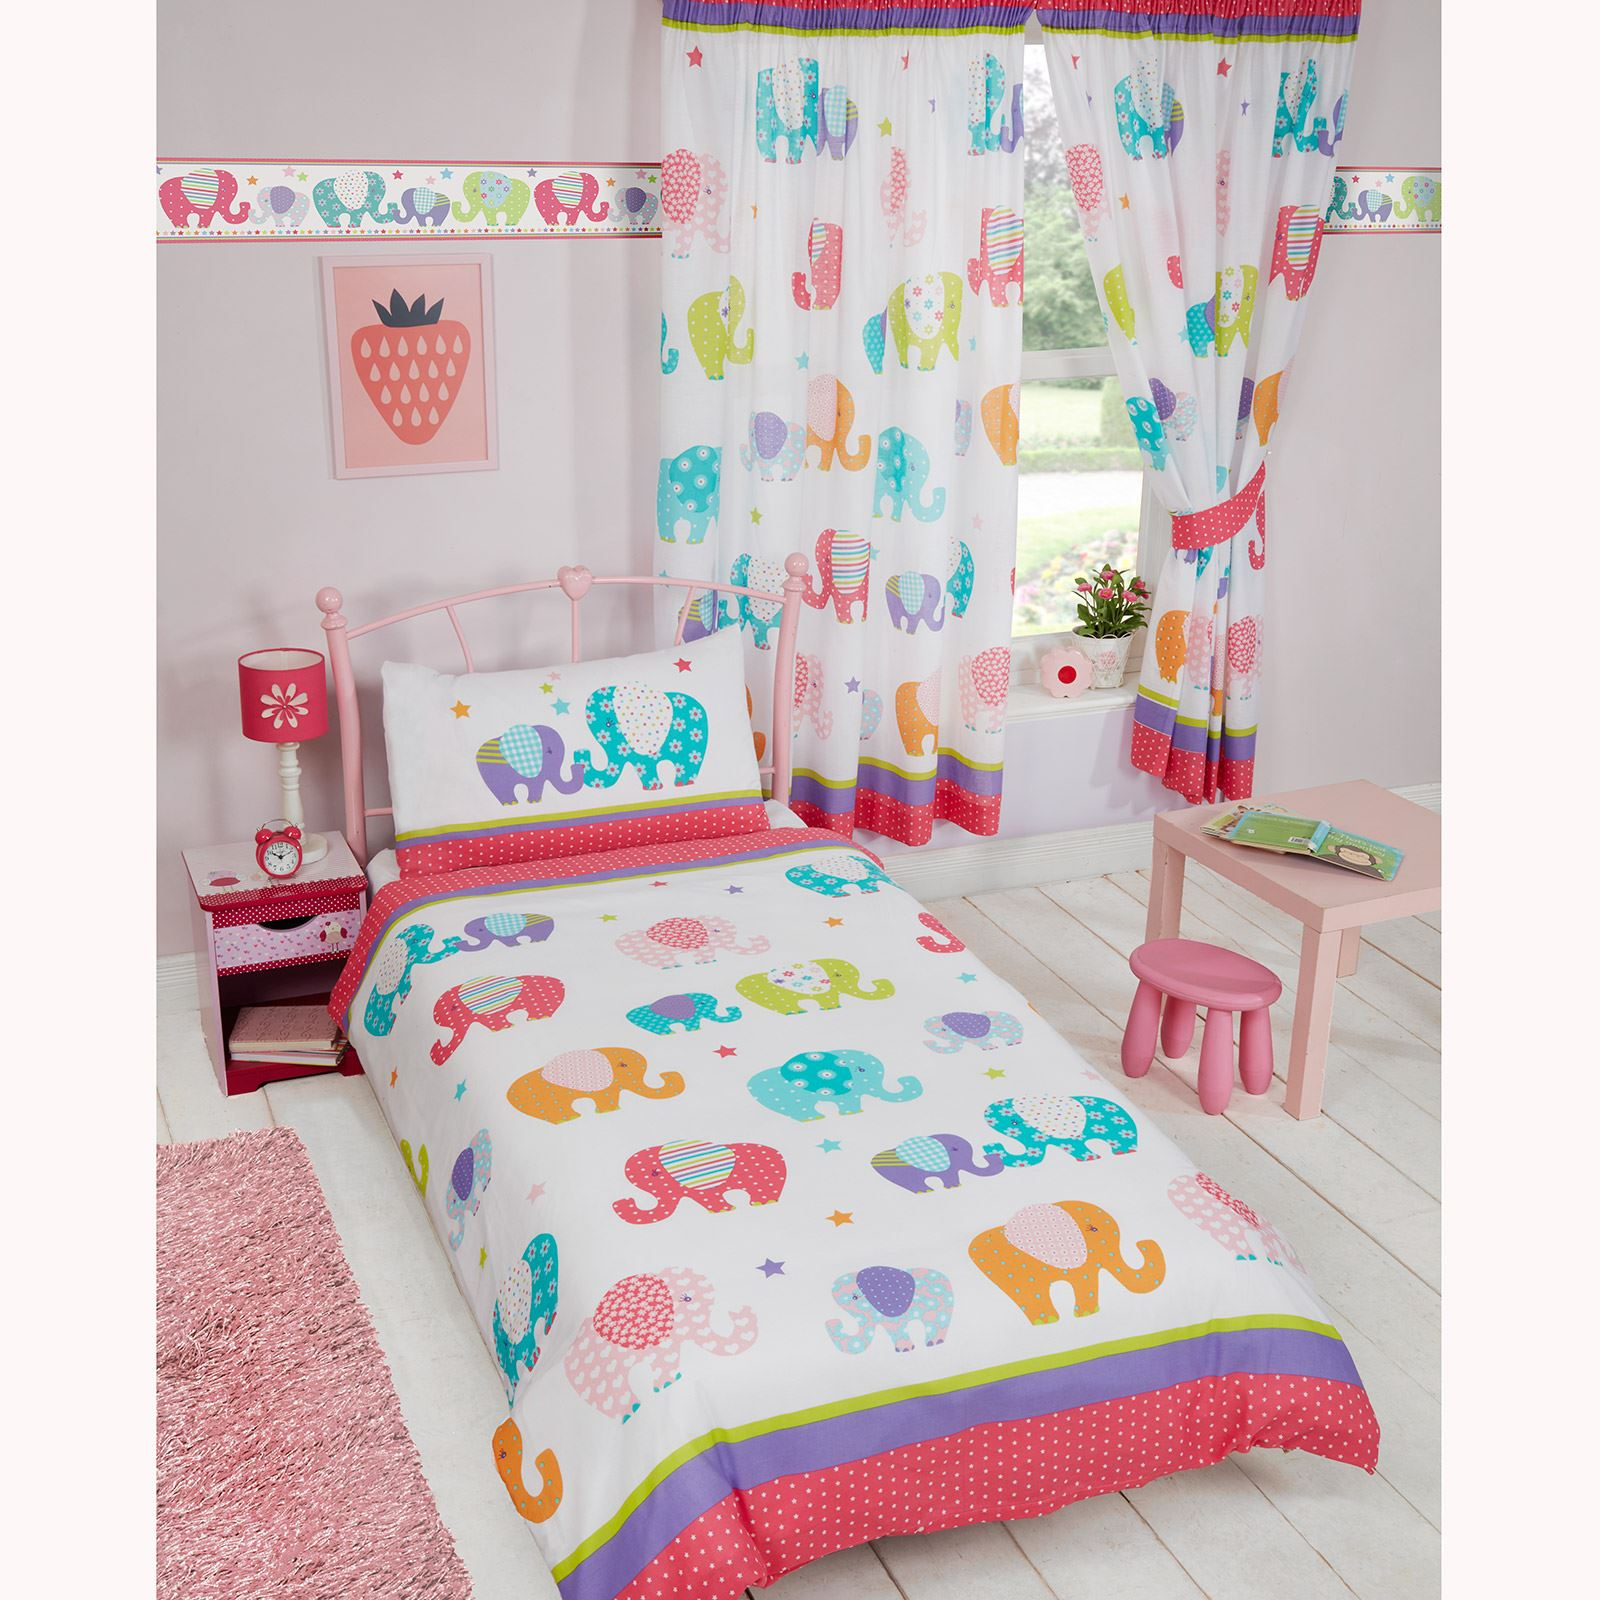 Winnie the pooh toddler bedding - Junior Toddler Duvet Cover Sets Cot Bedding Unicorn